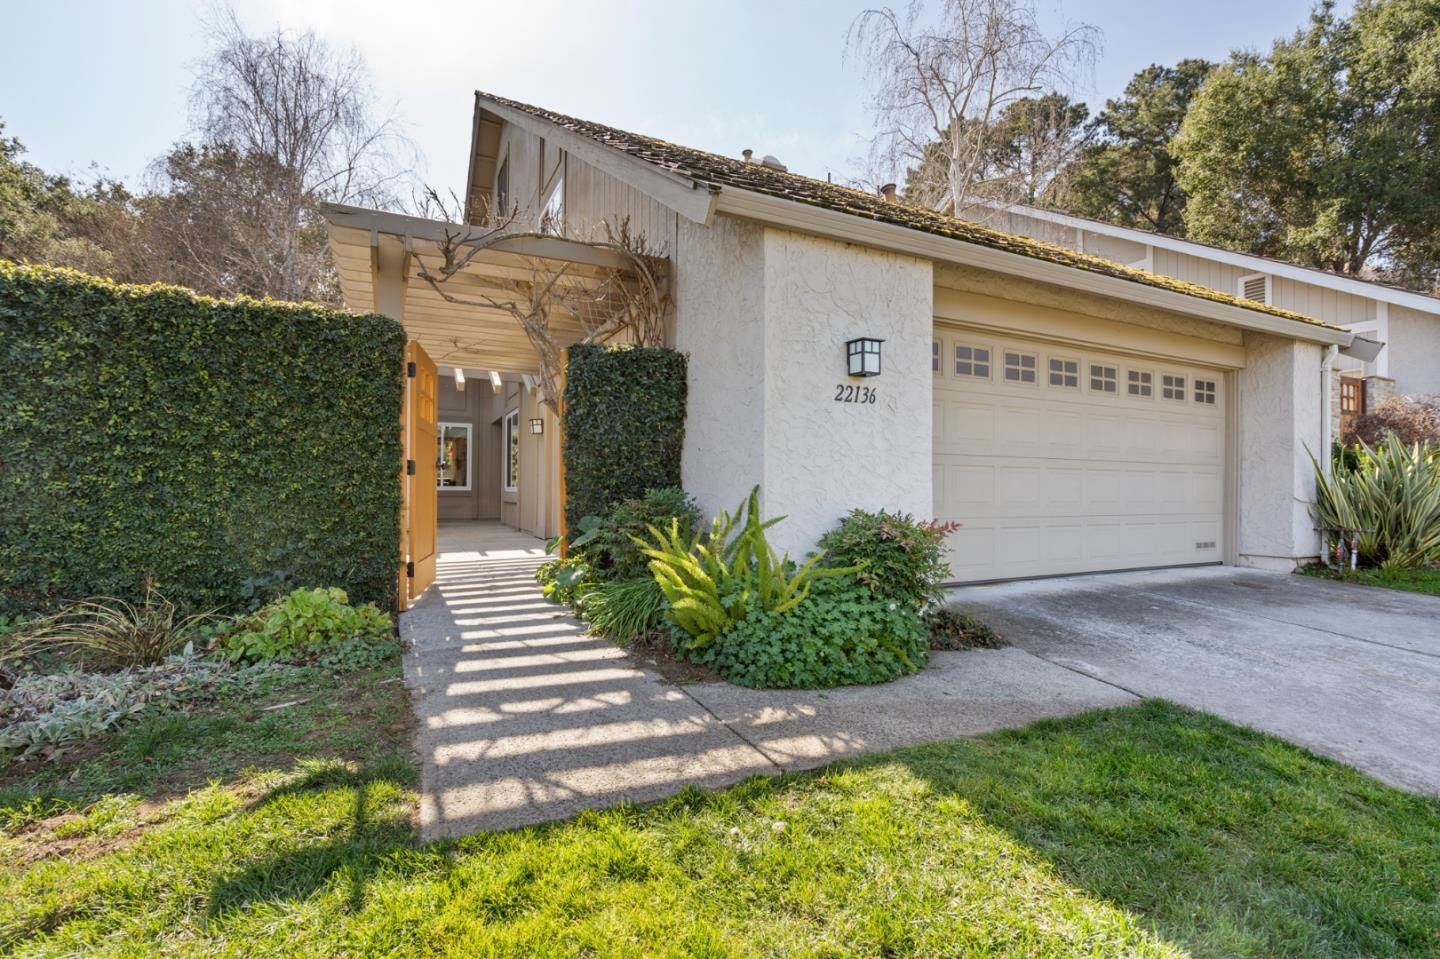 22136 DEAN CT, CUPERTINO, CA 95014